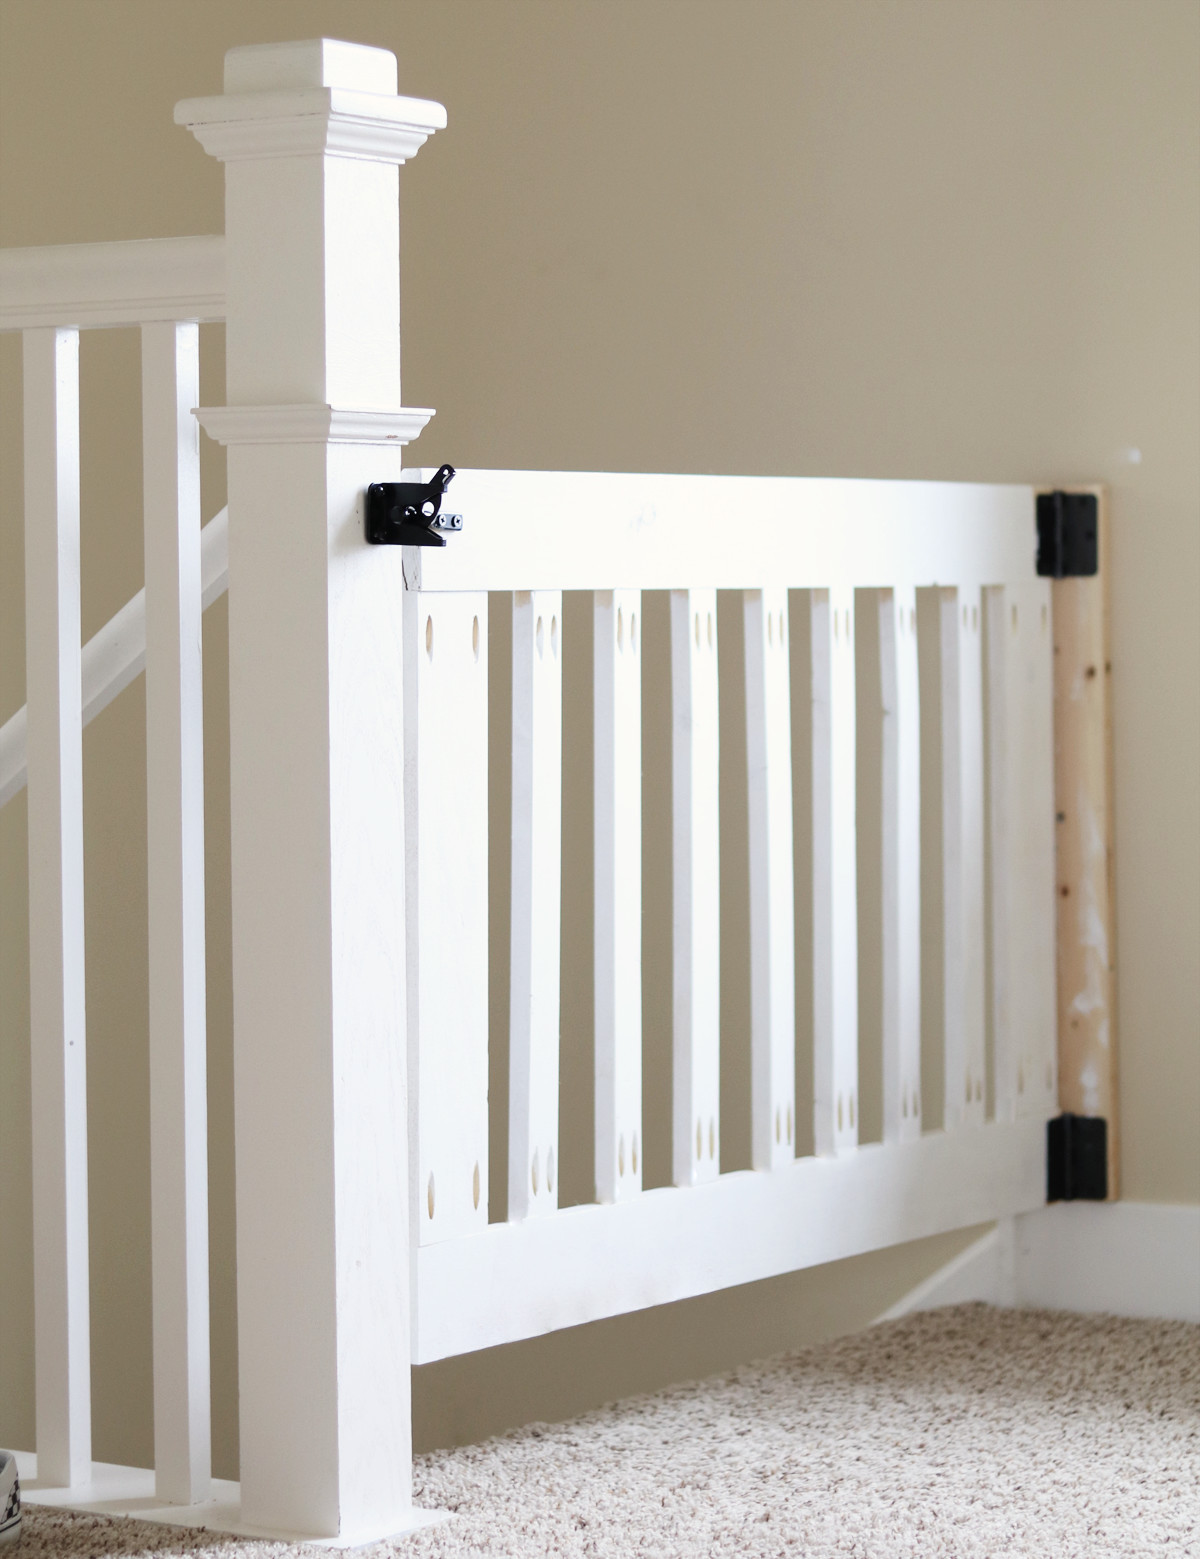 Best ideas about DIY Baby Fence . Save or Pin DIY Baby Gate – The Love Notes Blog Now.